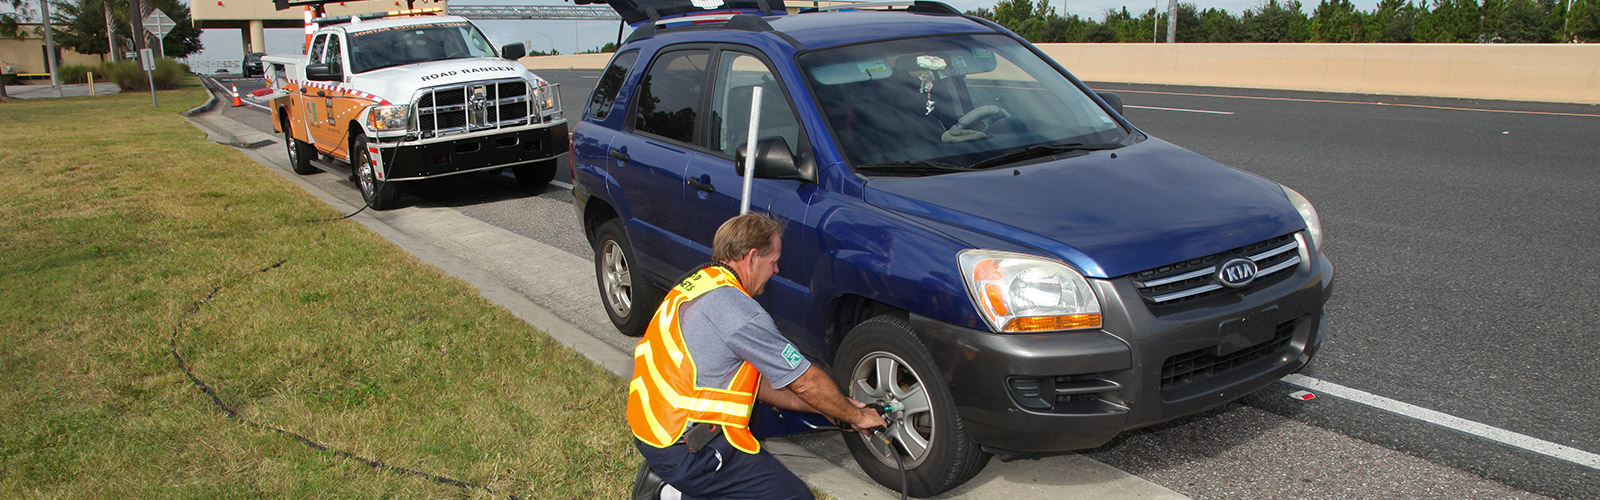 Road Ranger roadside assistance fixing a tire along expressway